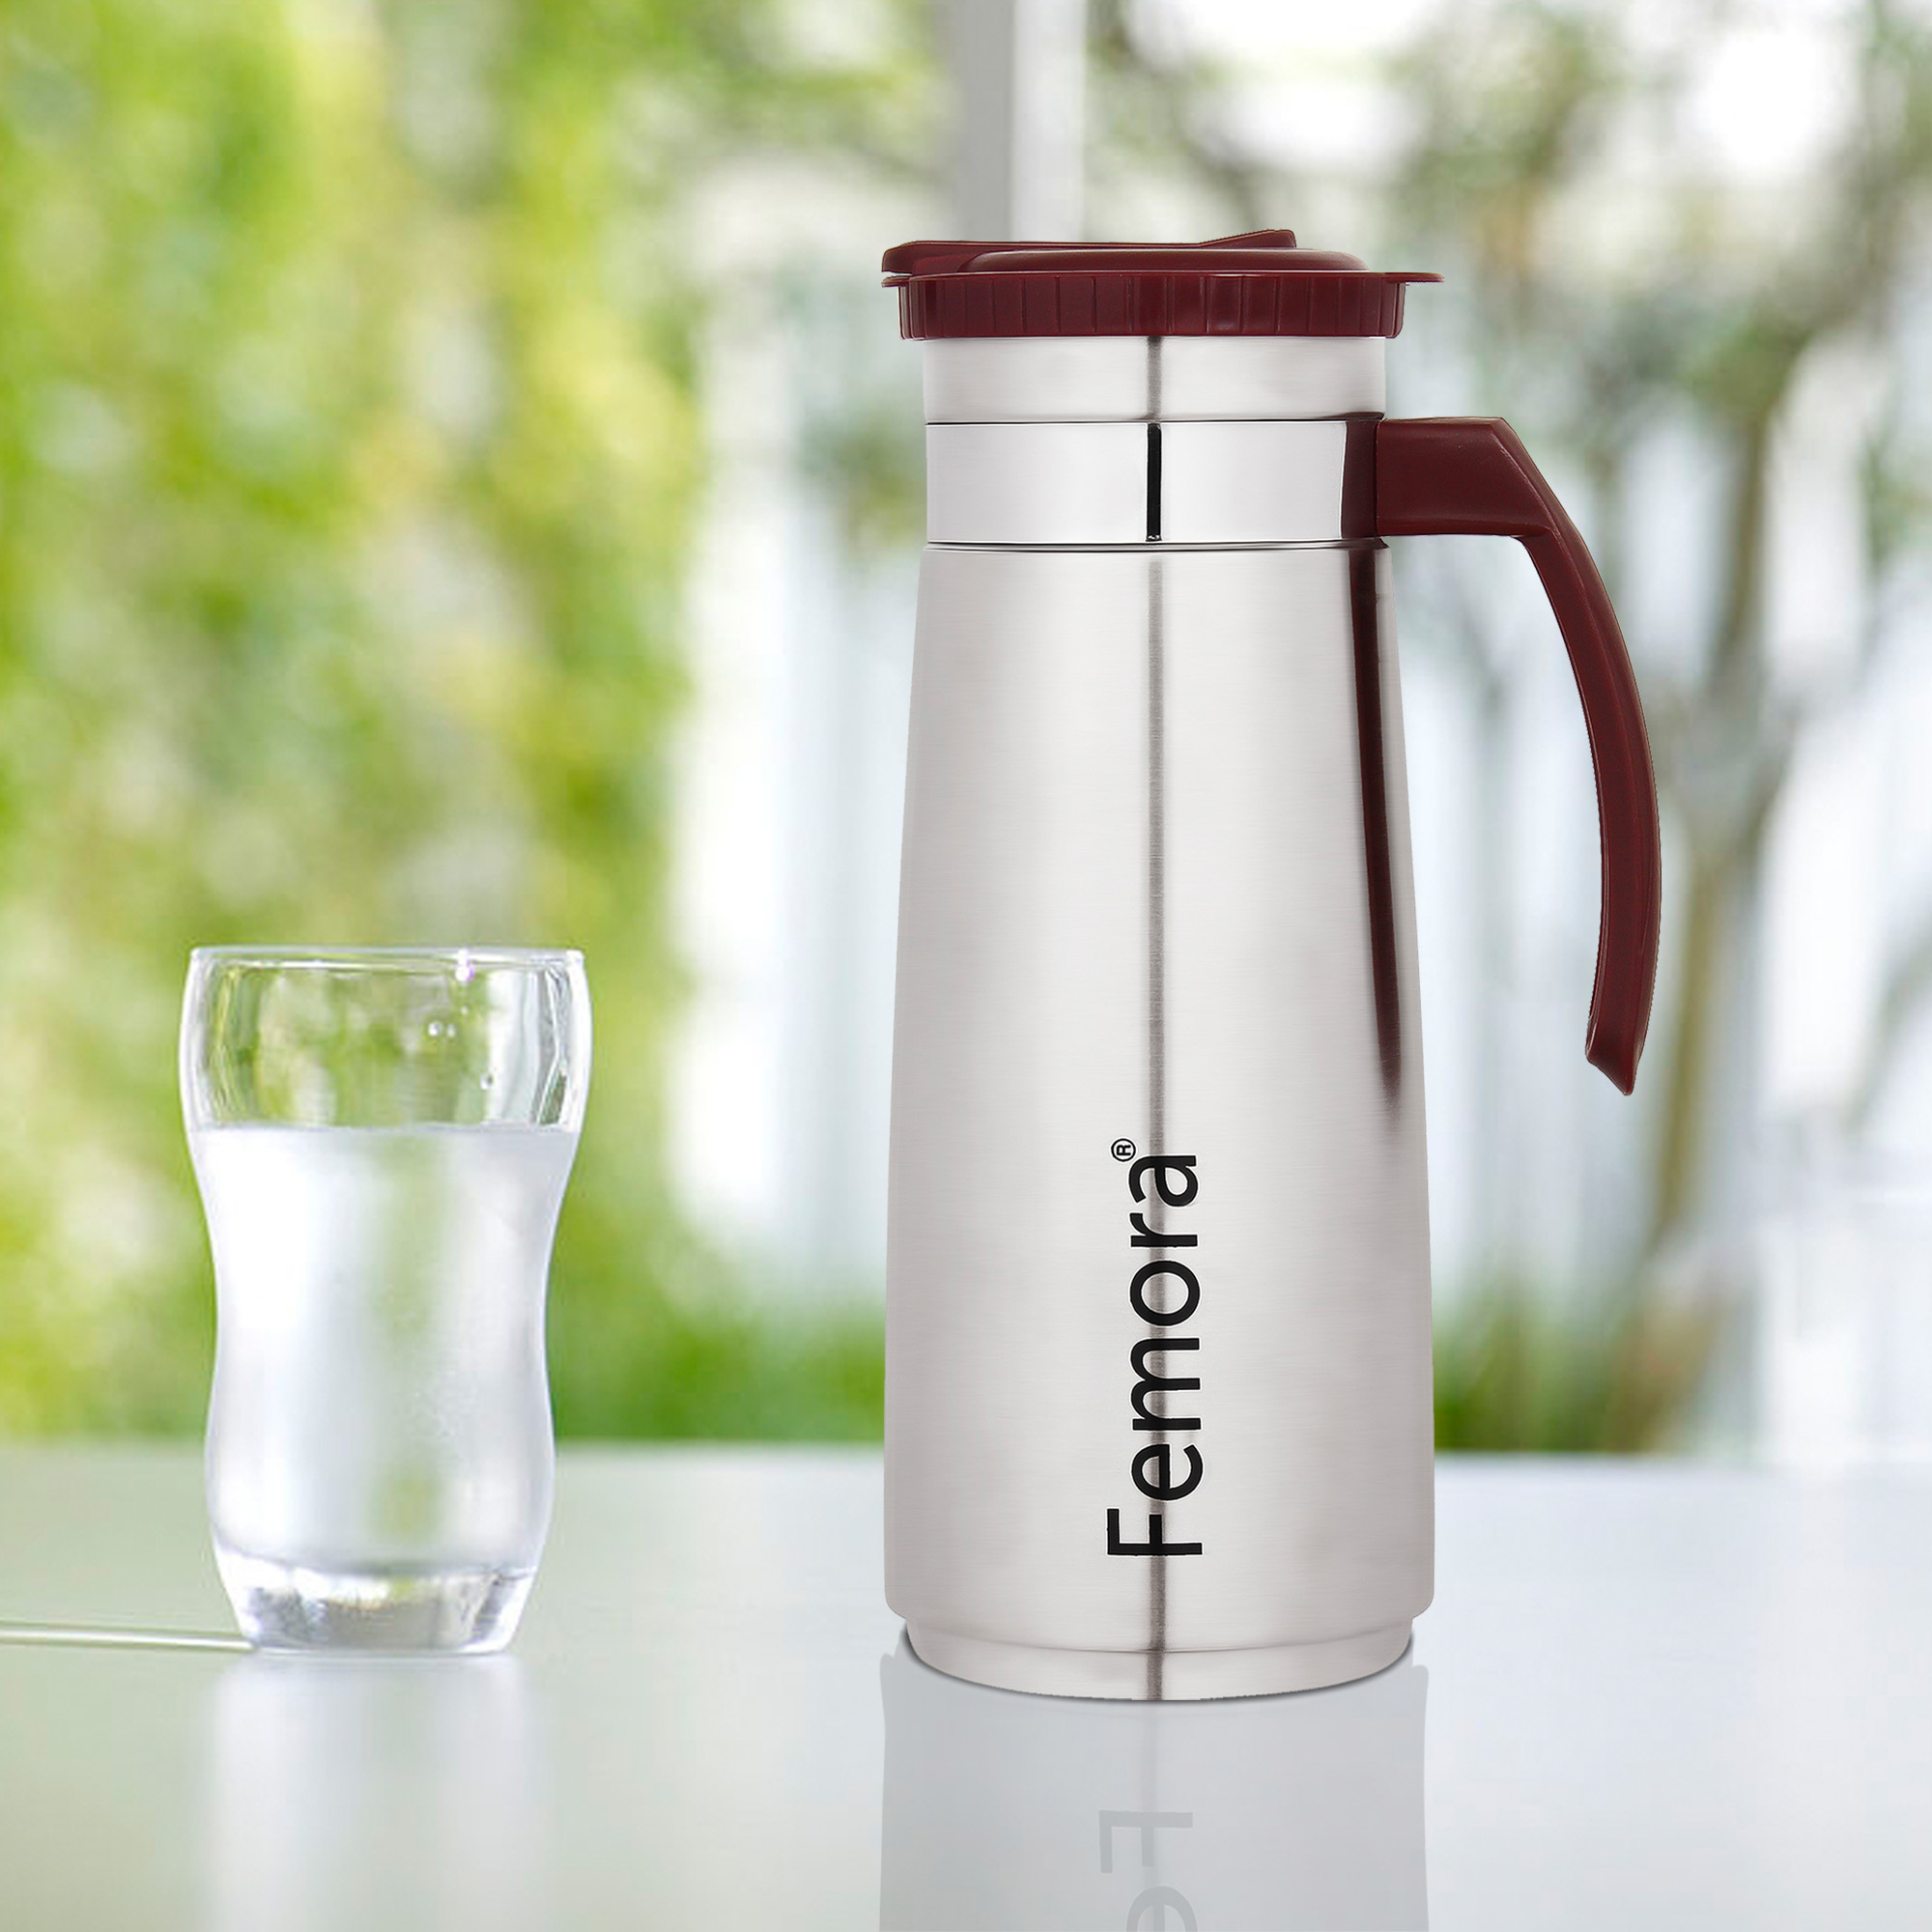 Stainless Steel Stylo Jug with Handle, Maroon - 1.2 L